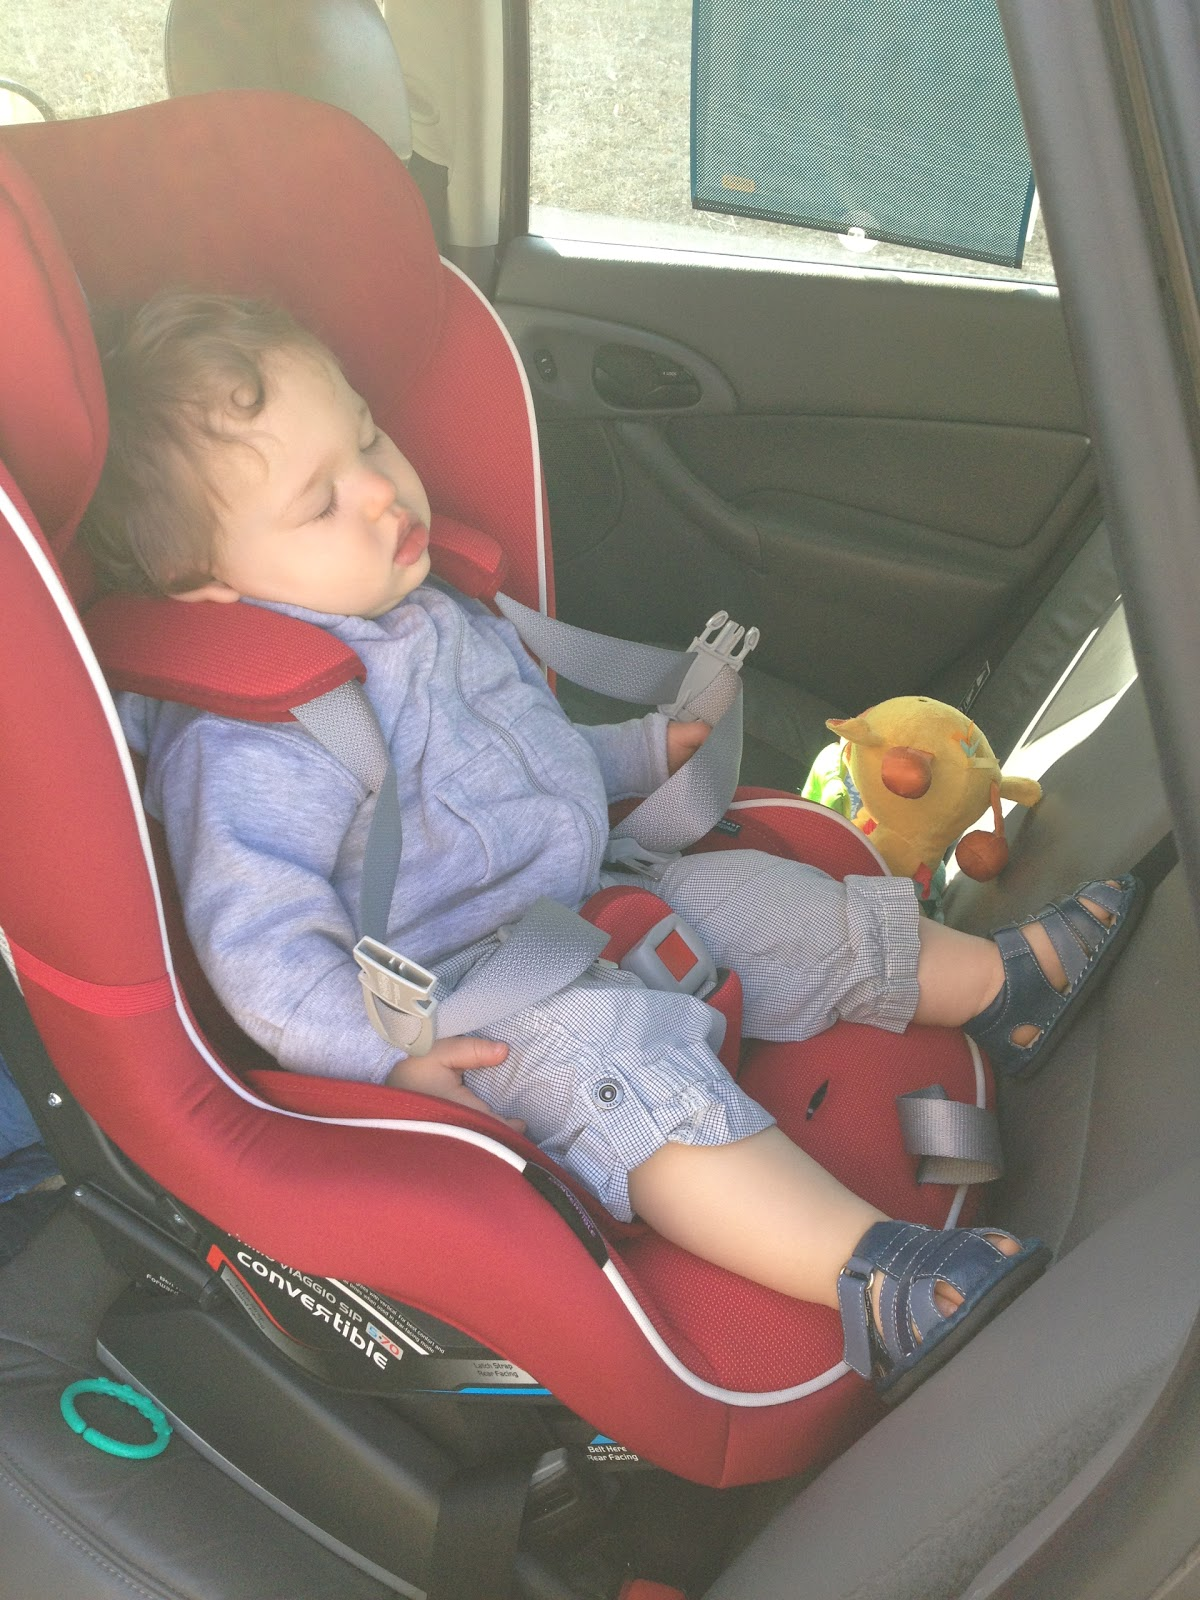 Peg Perego Convertible Car Seat vs. Maxi Cosi Priori | baby stripes